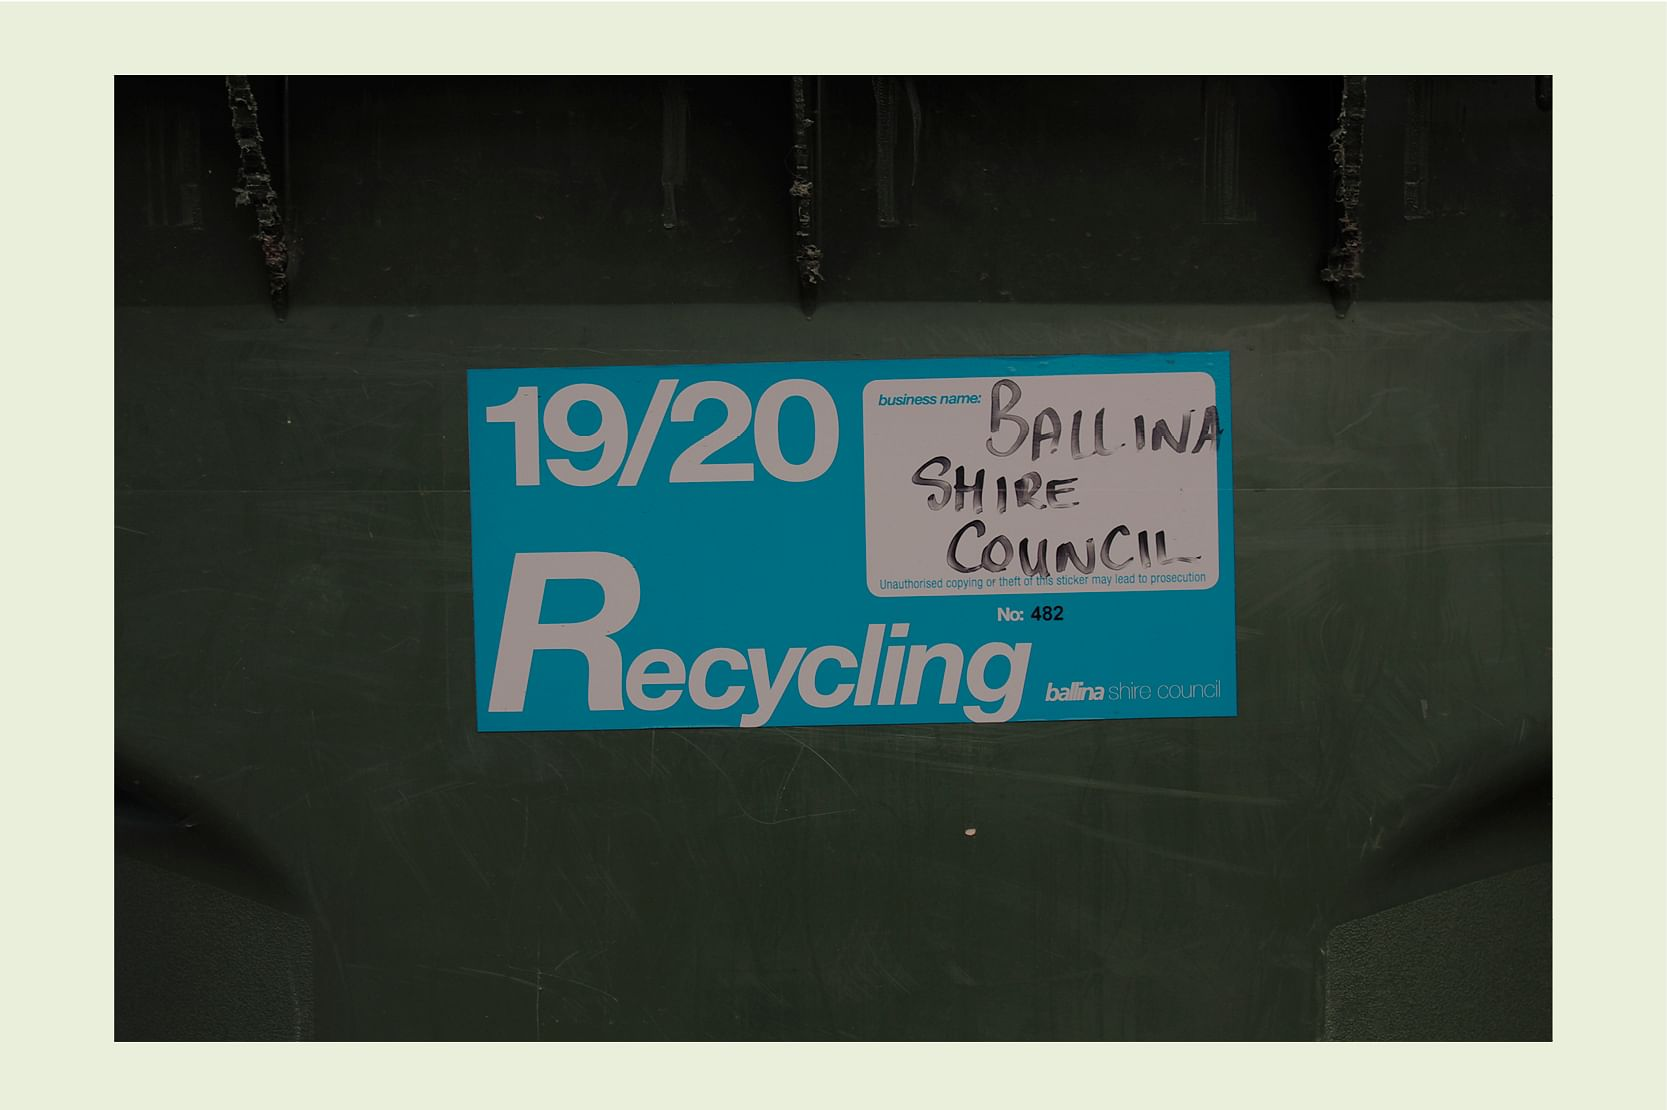 Commercial waste stickers image